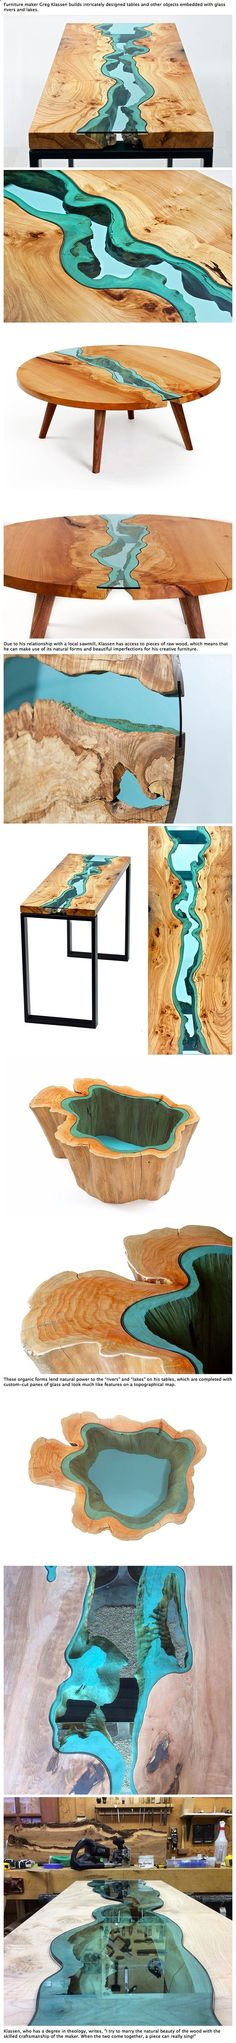 Teds Wood Working - Teds Wood Working - Teds Wood Working - This guy uses raw wood and glass to create very clever pieces of furniture… - Get A Lifetime Of Project Ideas Inspiration! - Get A Lifetime Of Project Ideas  Inspiration! - Get A Lifetime Of Project Ideas & Inspiration!